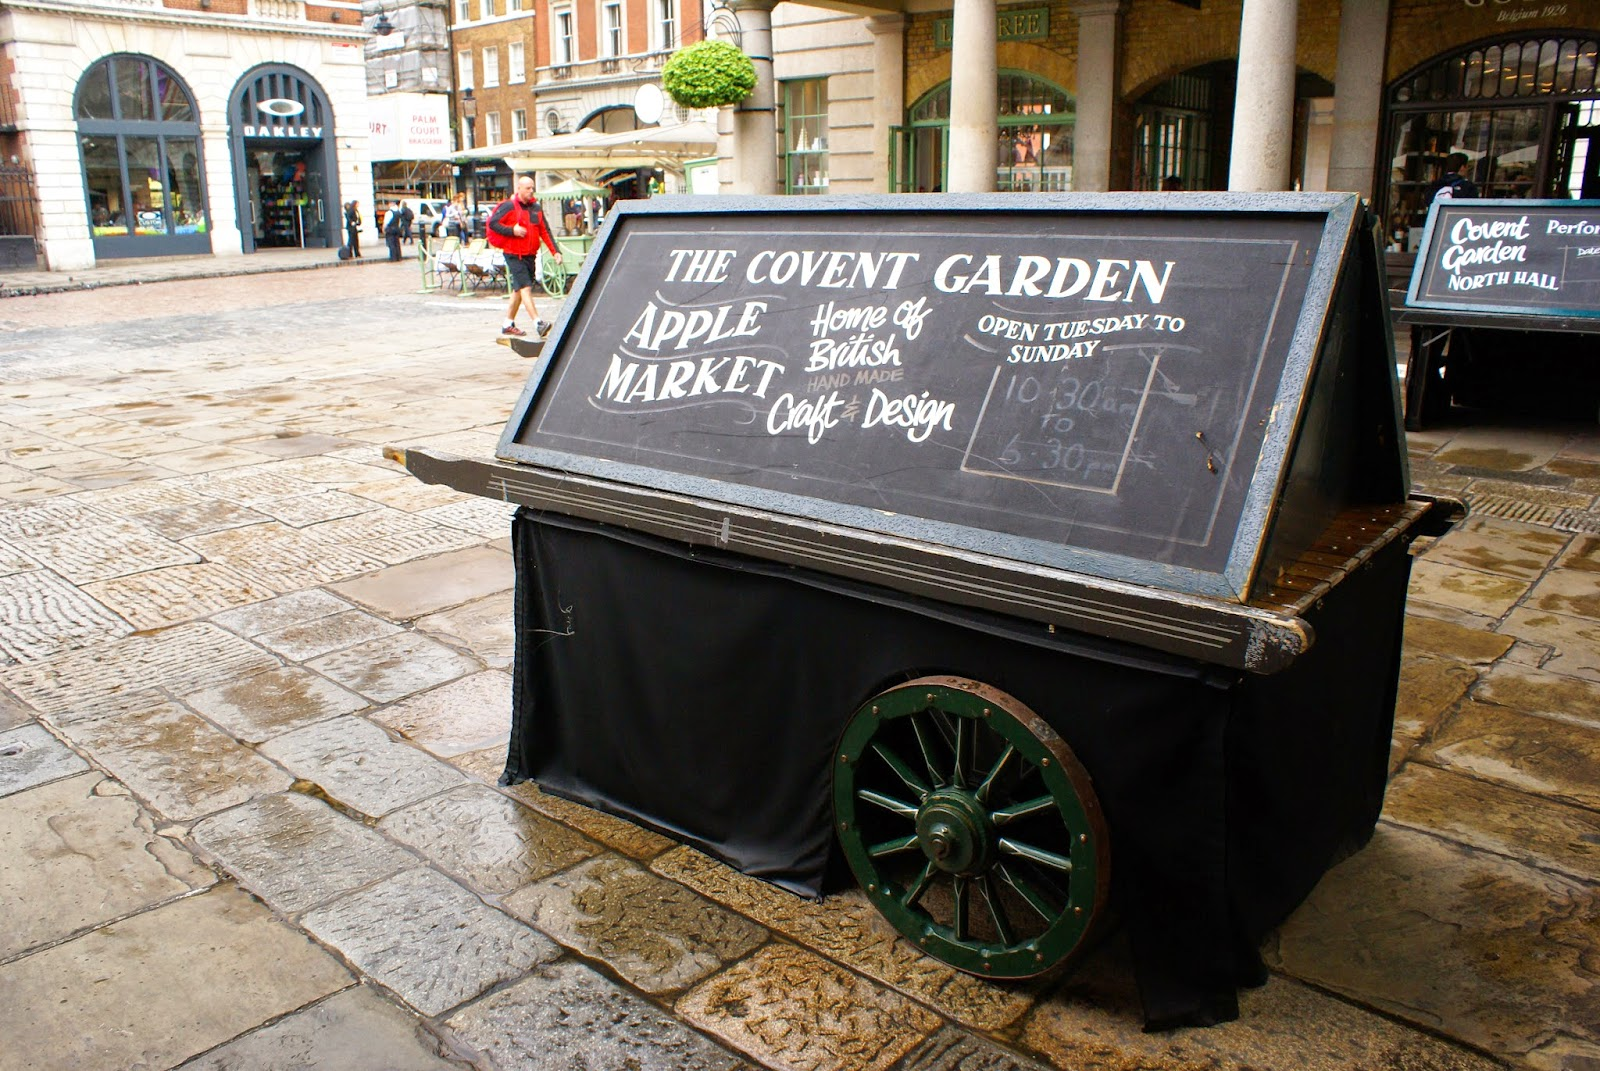 london covent garden uk england londres